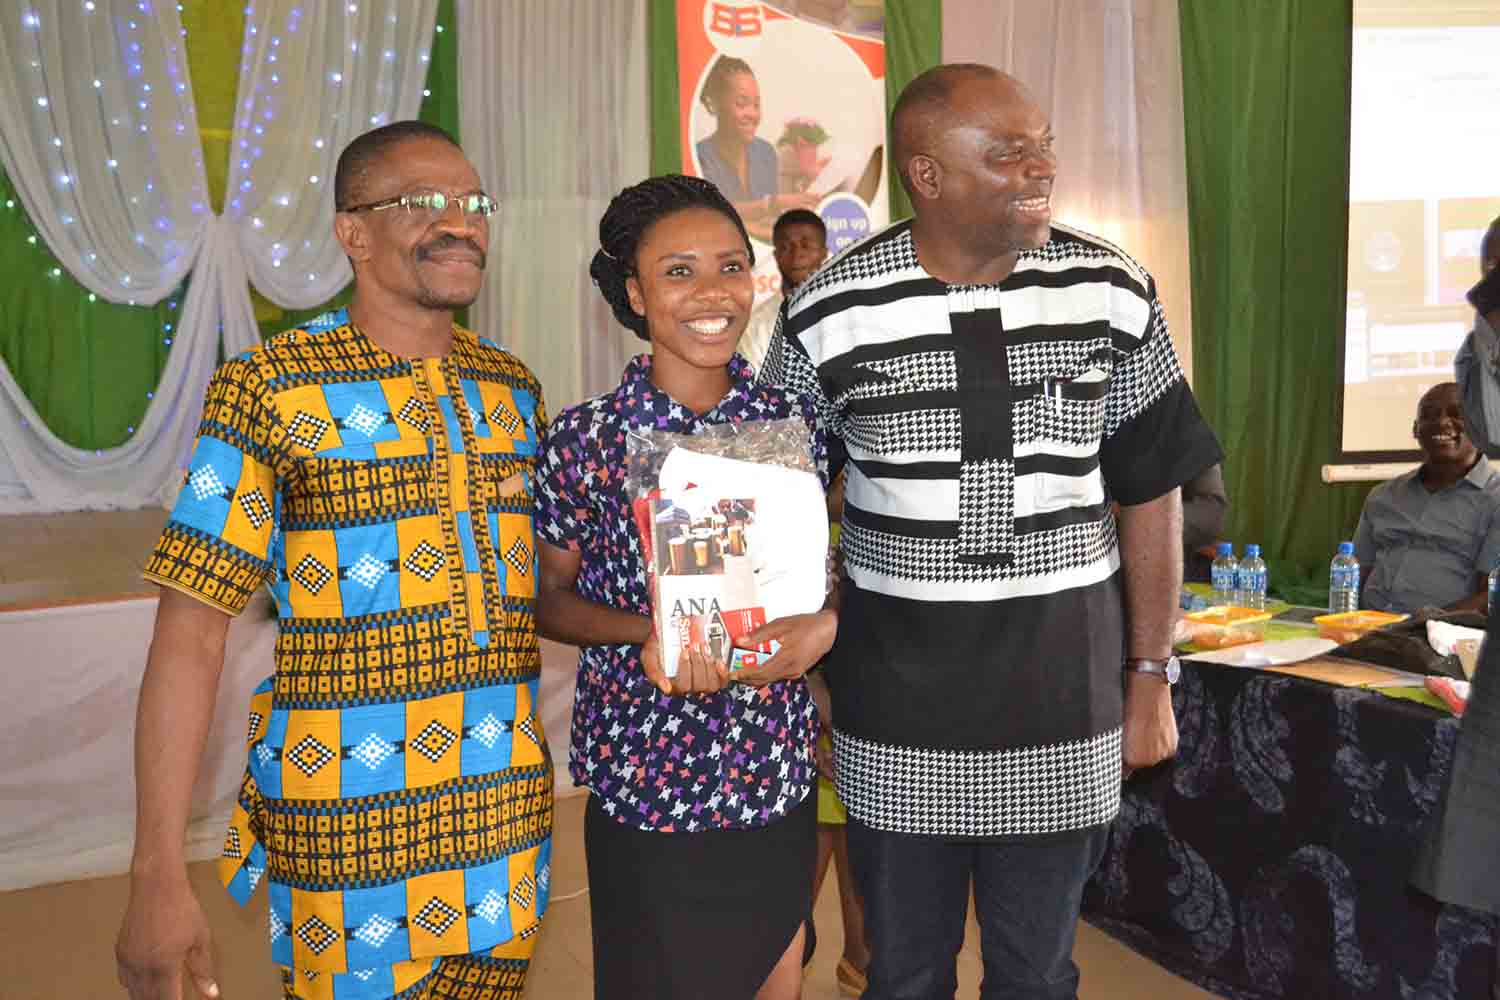 Left to Right- ANA Vice President, Mr Camillus Ukah, First Prize winner in the Drama workshop, Ms Deborah, and the Vice Chancellor